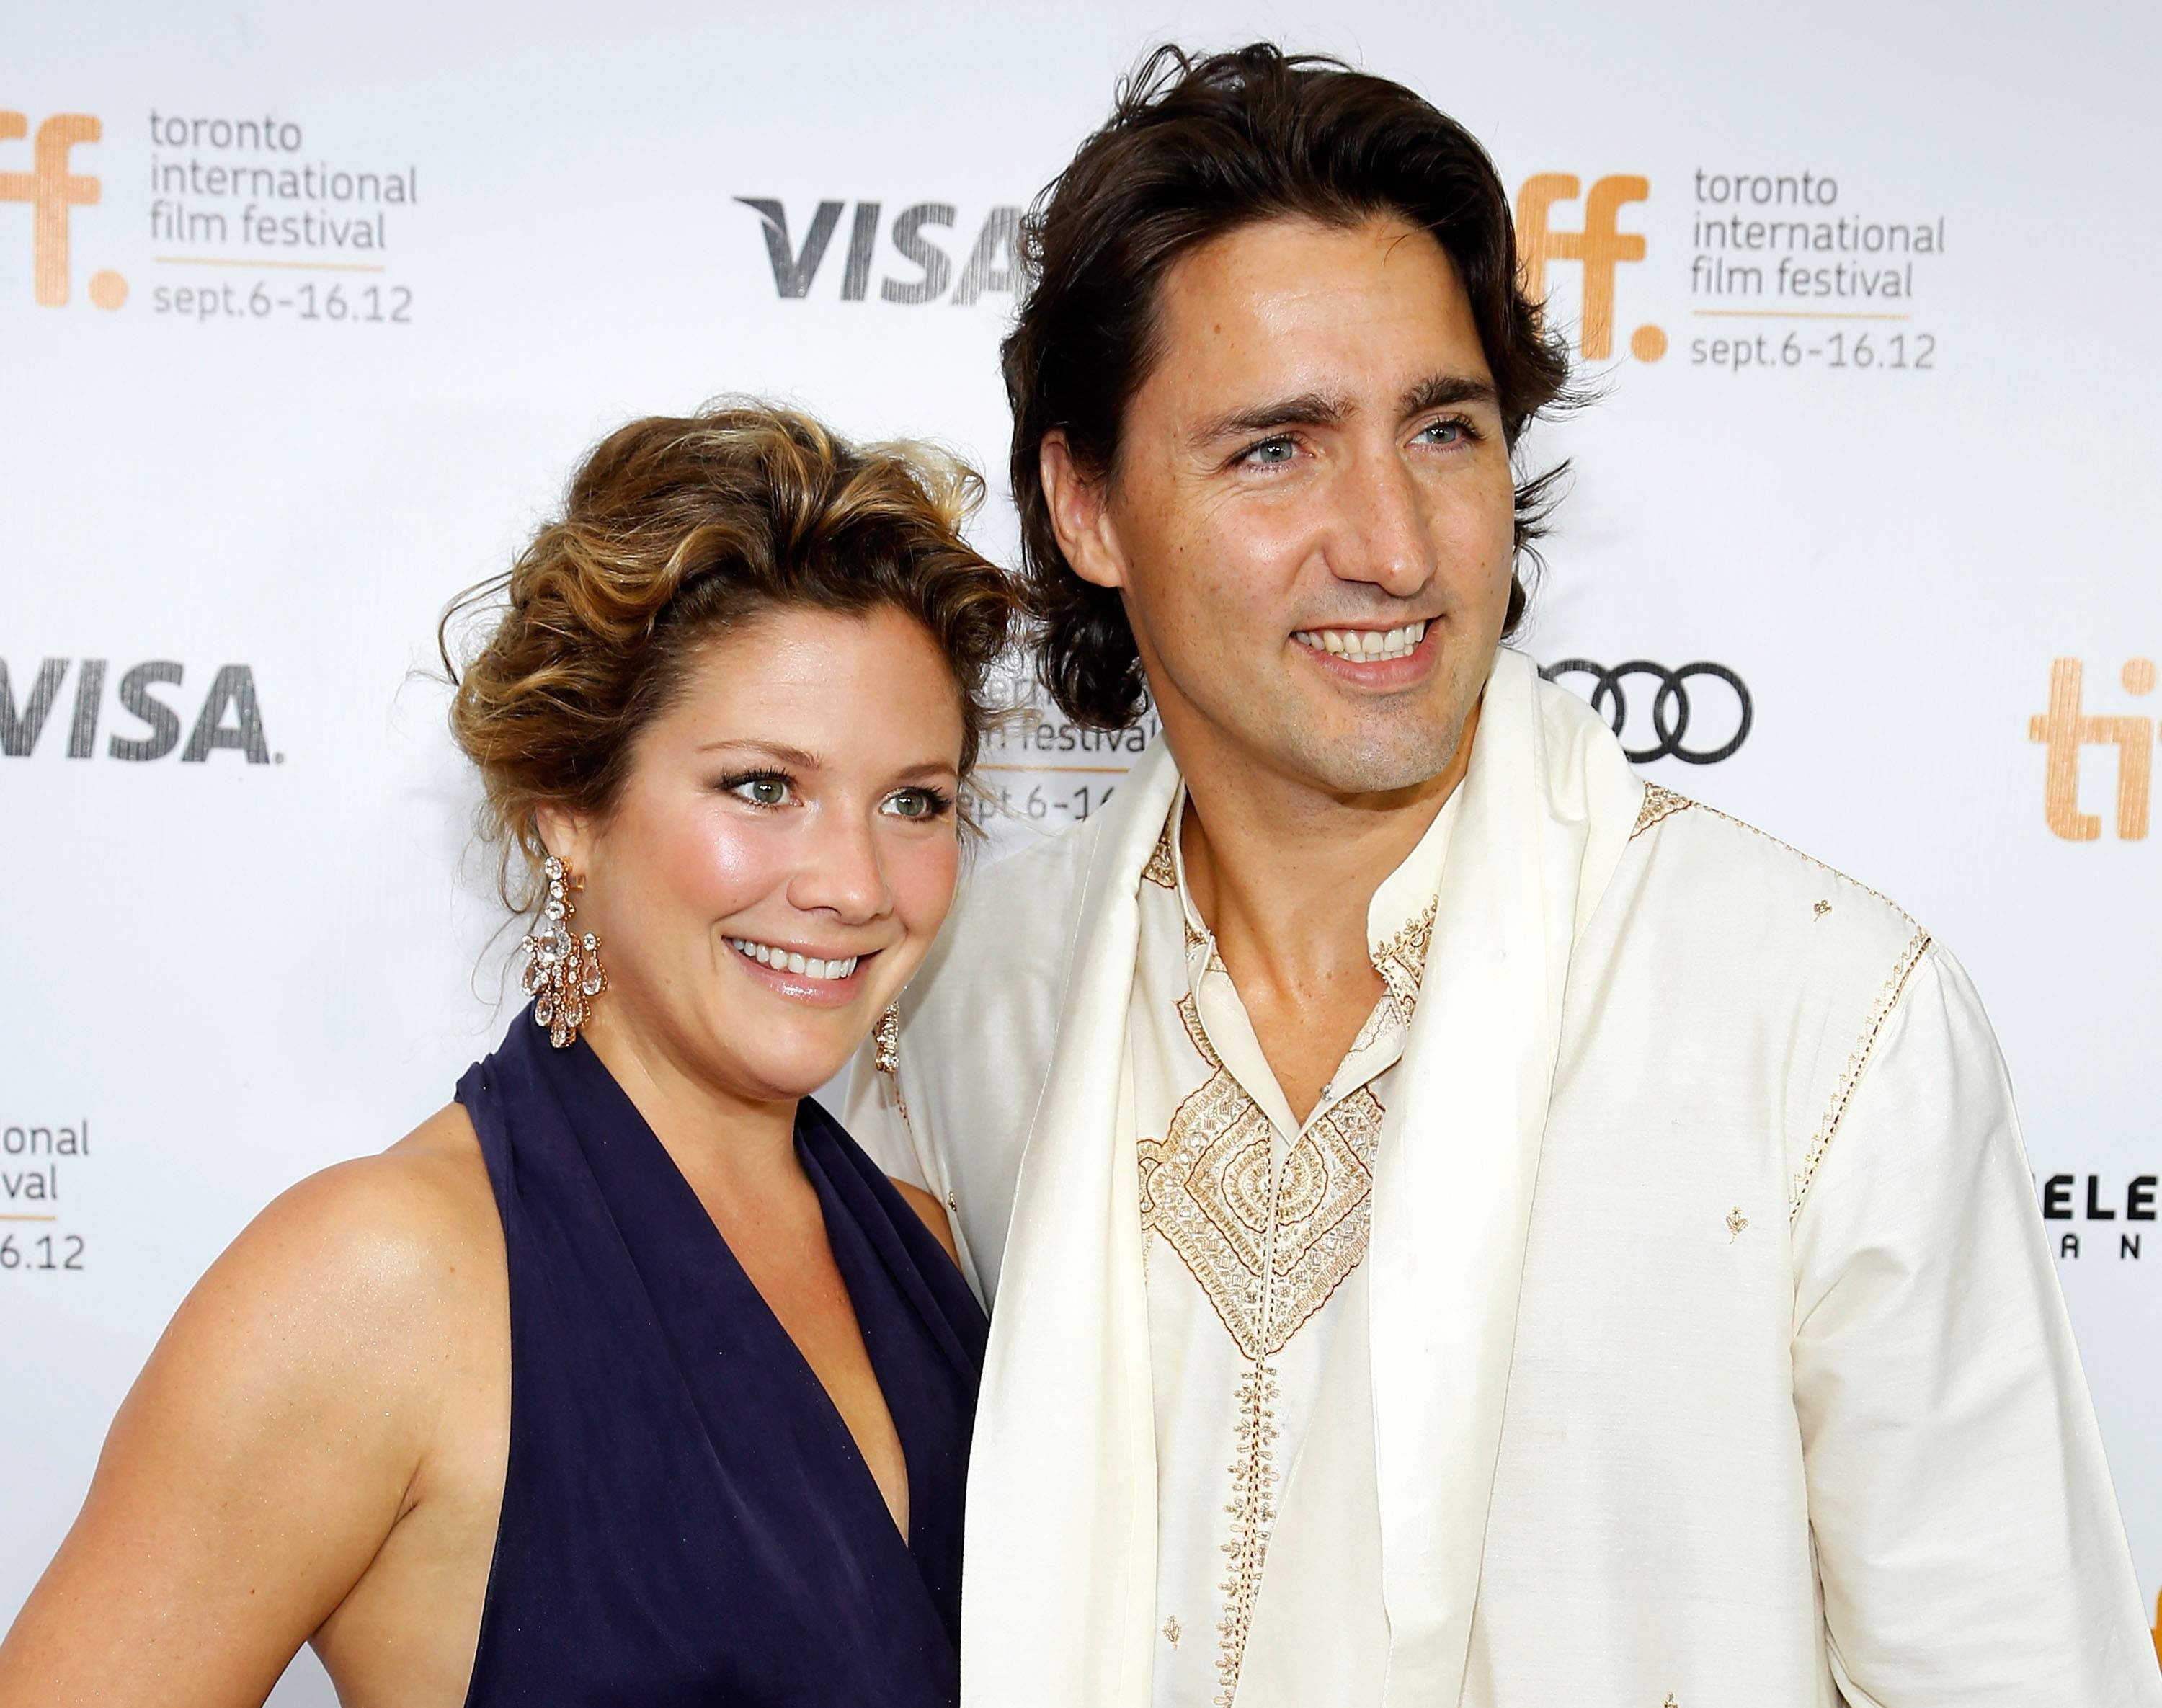 ideas about Justin Trudeau Children on Pinterest   Justin trudeau kids  Justin trudeau prime minister and Justin trudeau family